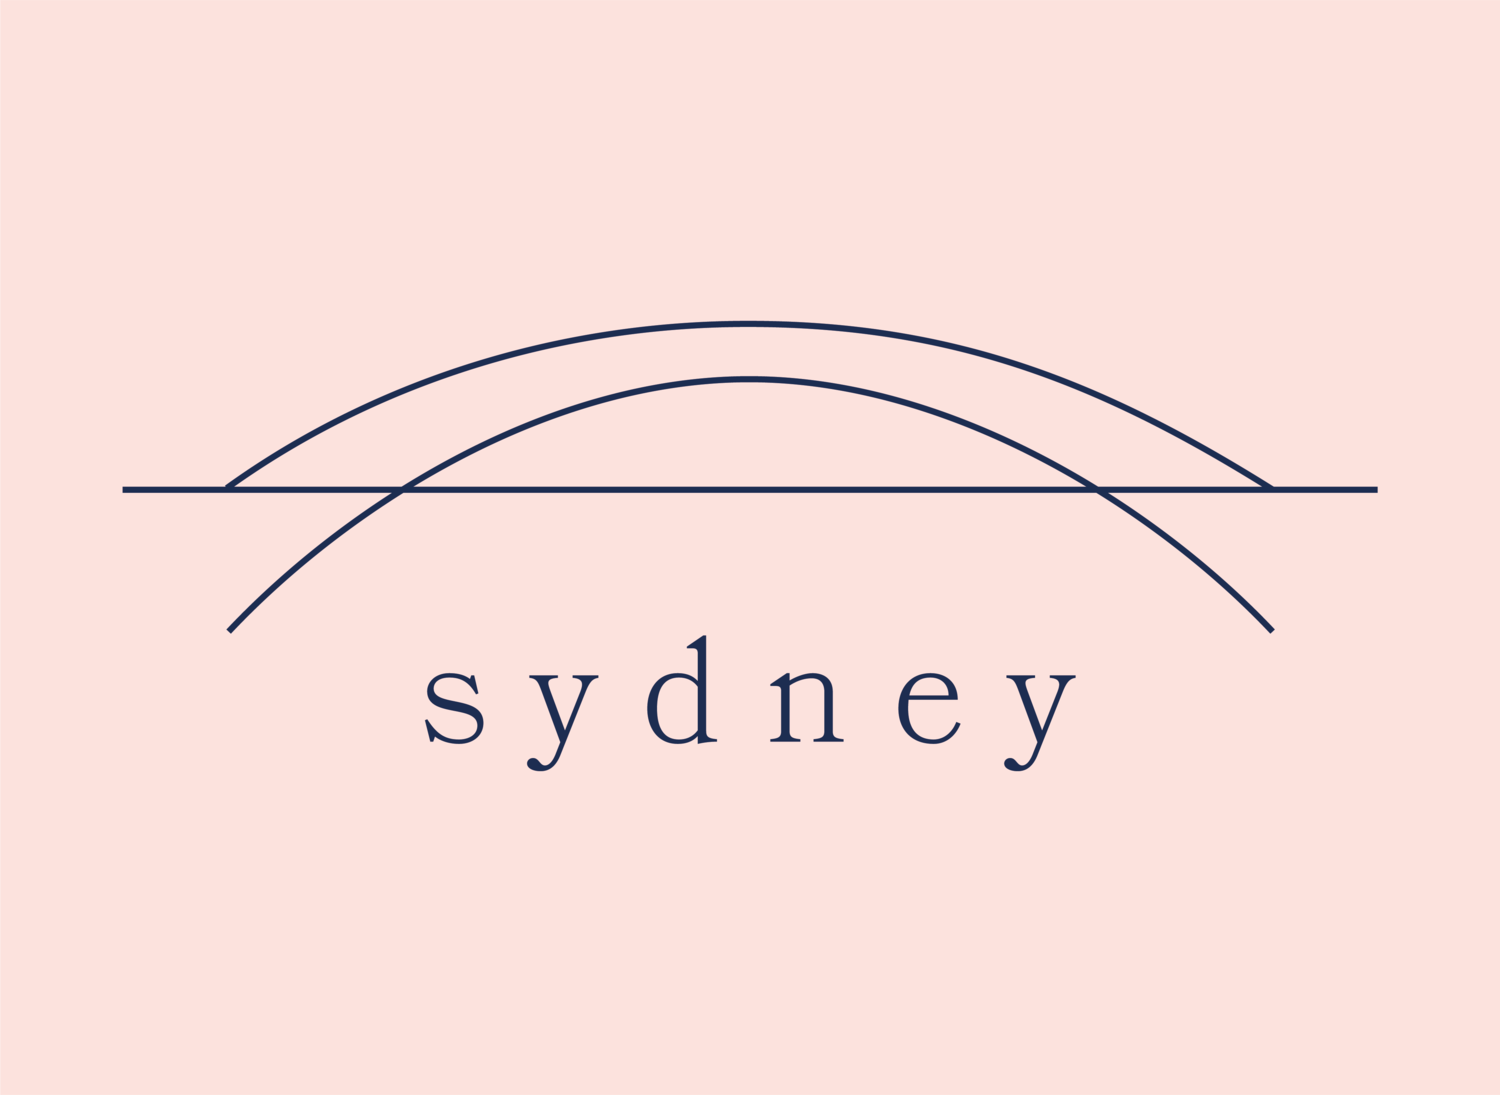 sydney - an all-day café - Providence, Portsmouth, Garden City